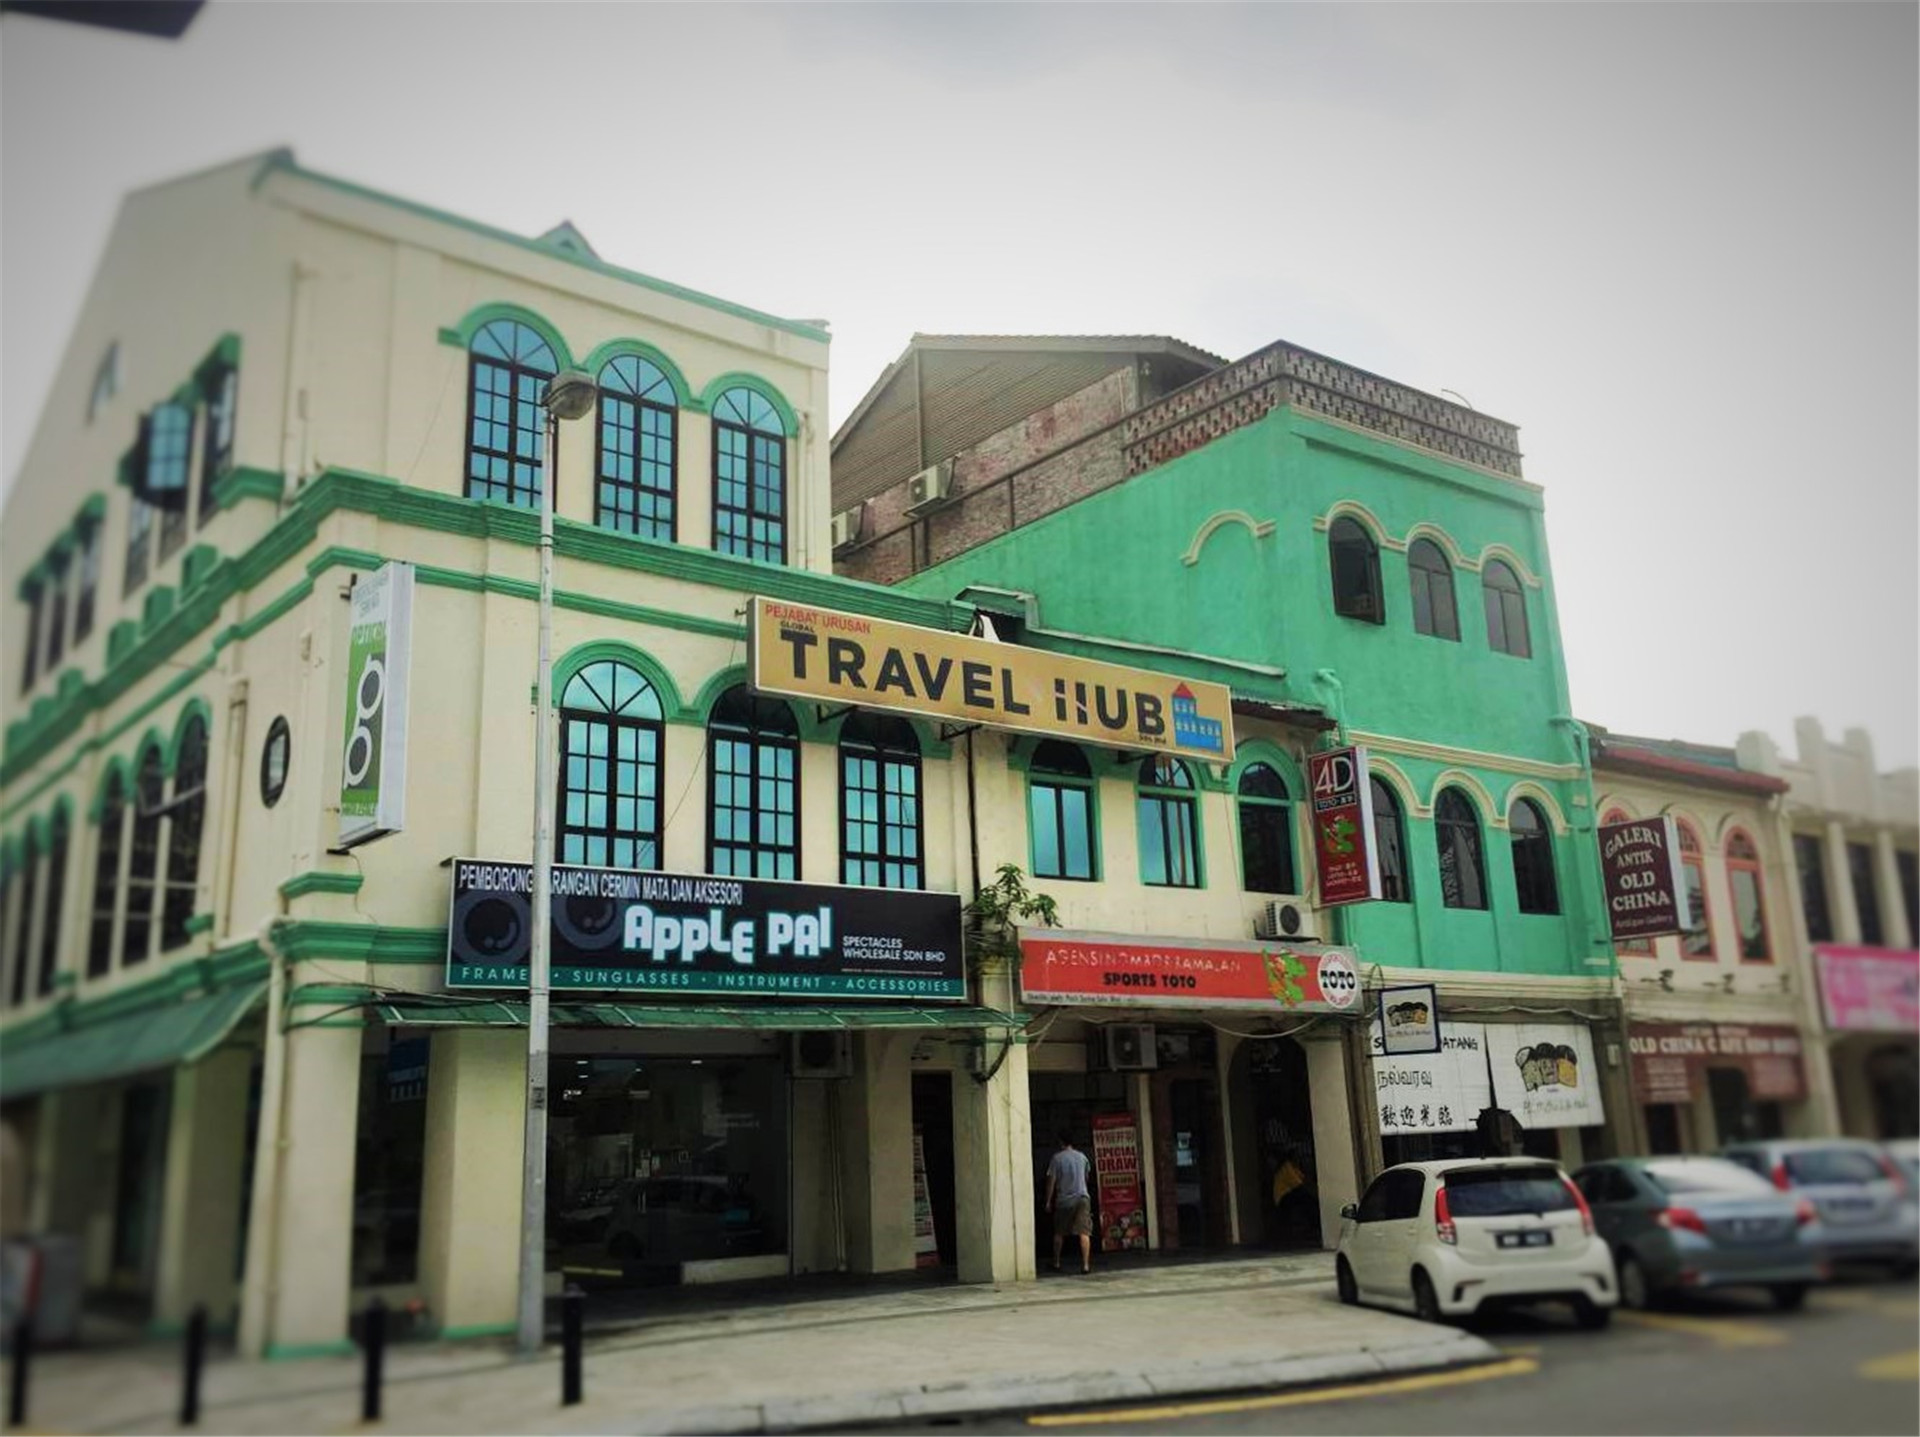 Travel Hub Highstreet